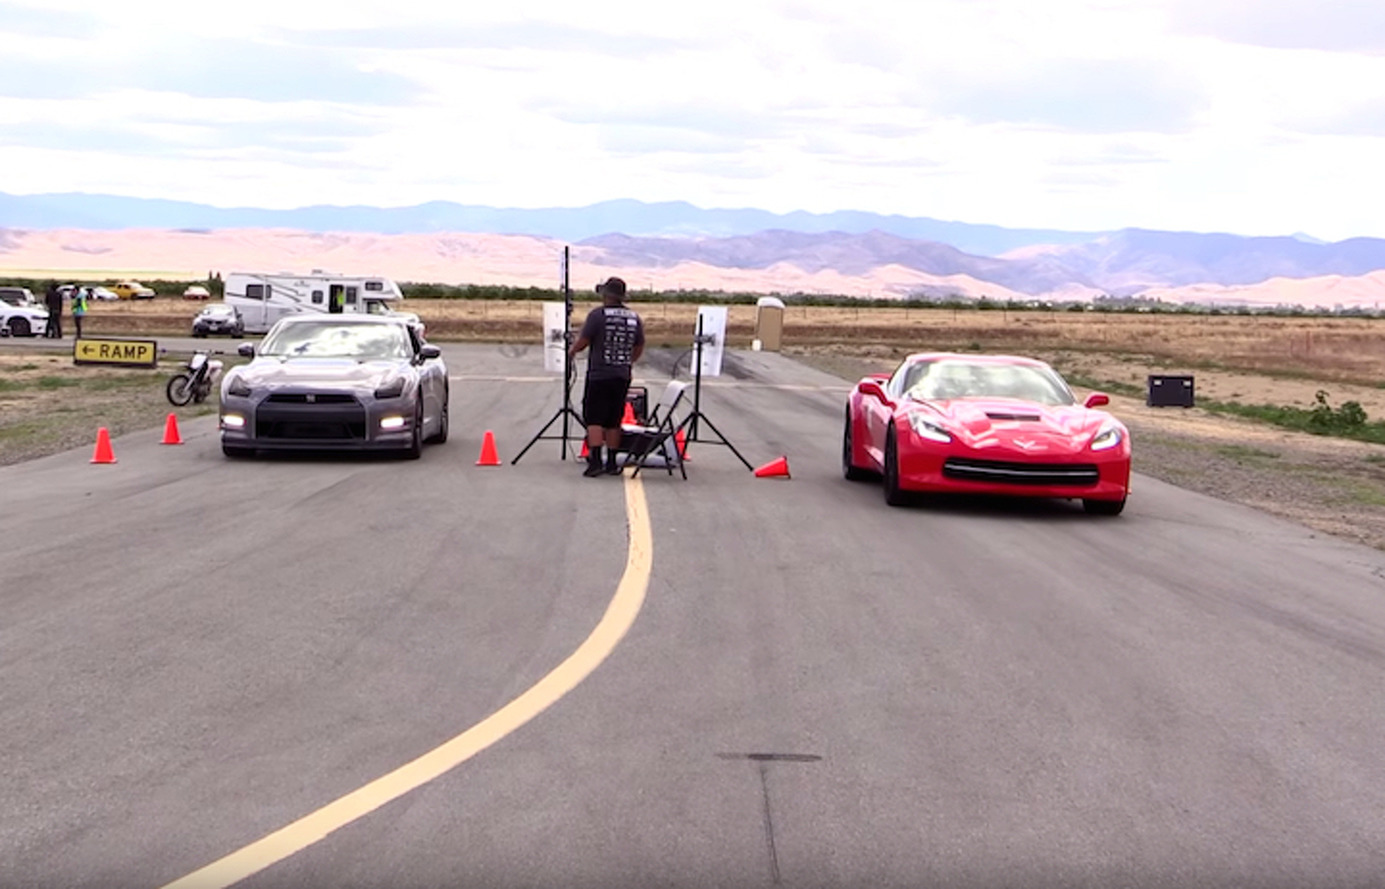 Watch a Nitrous-Wielding Corvette Stingray Chase Down a Nissan GT-R